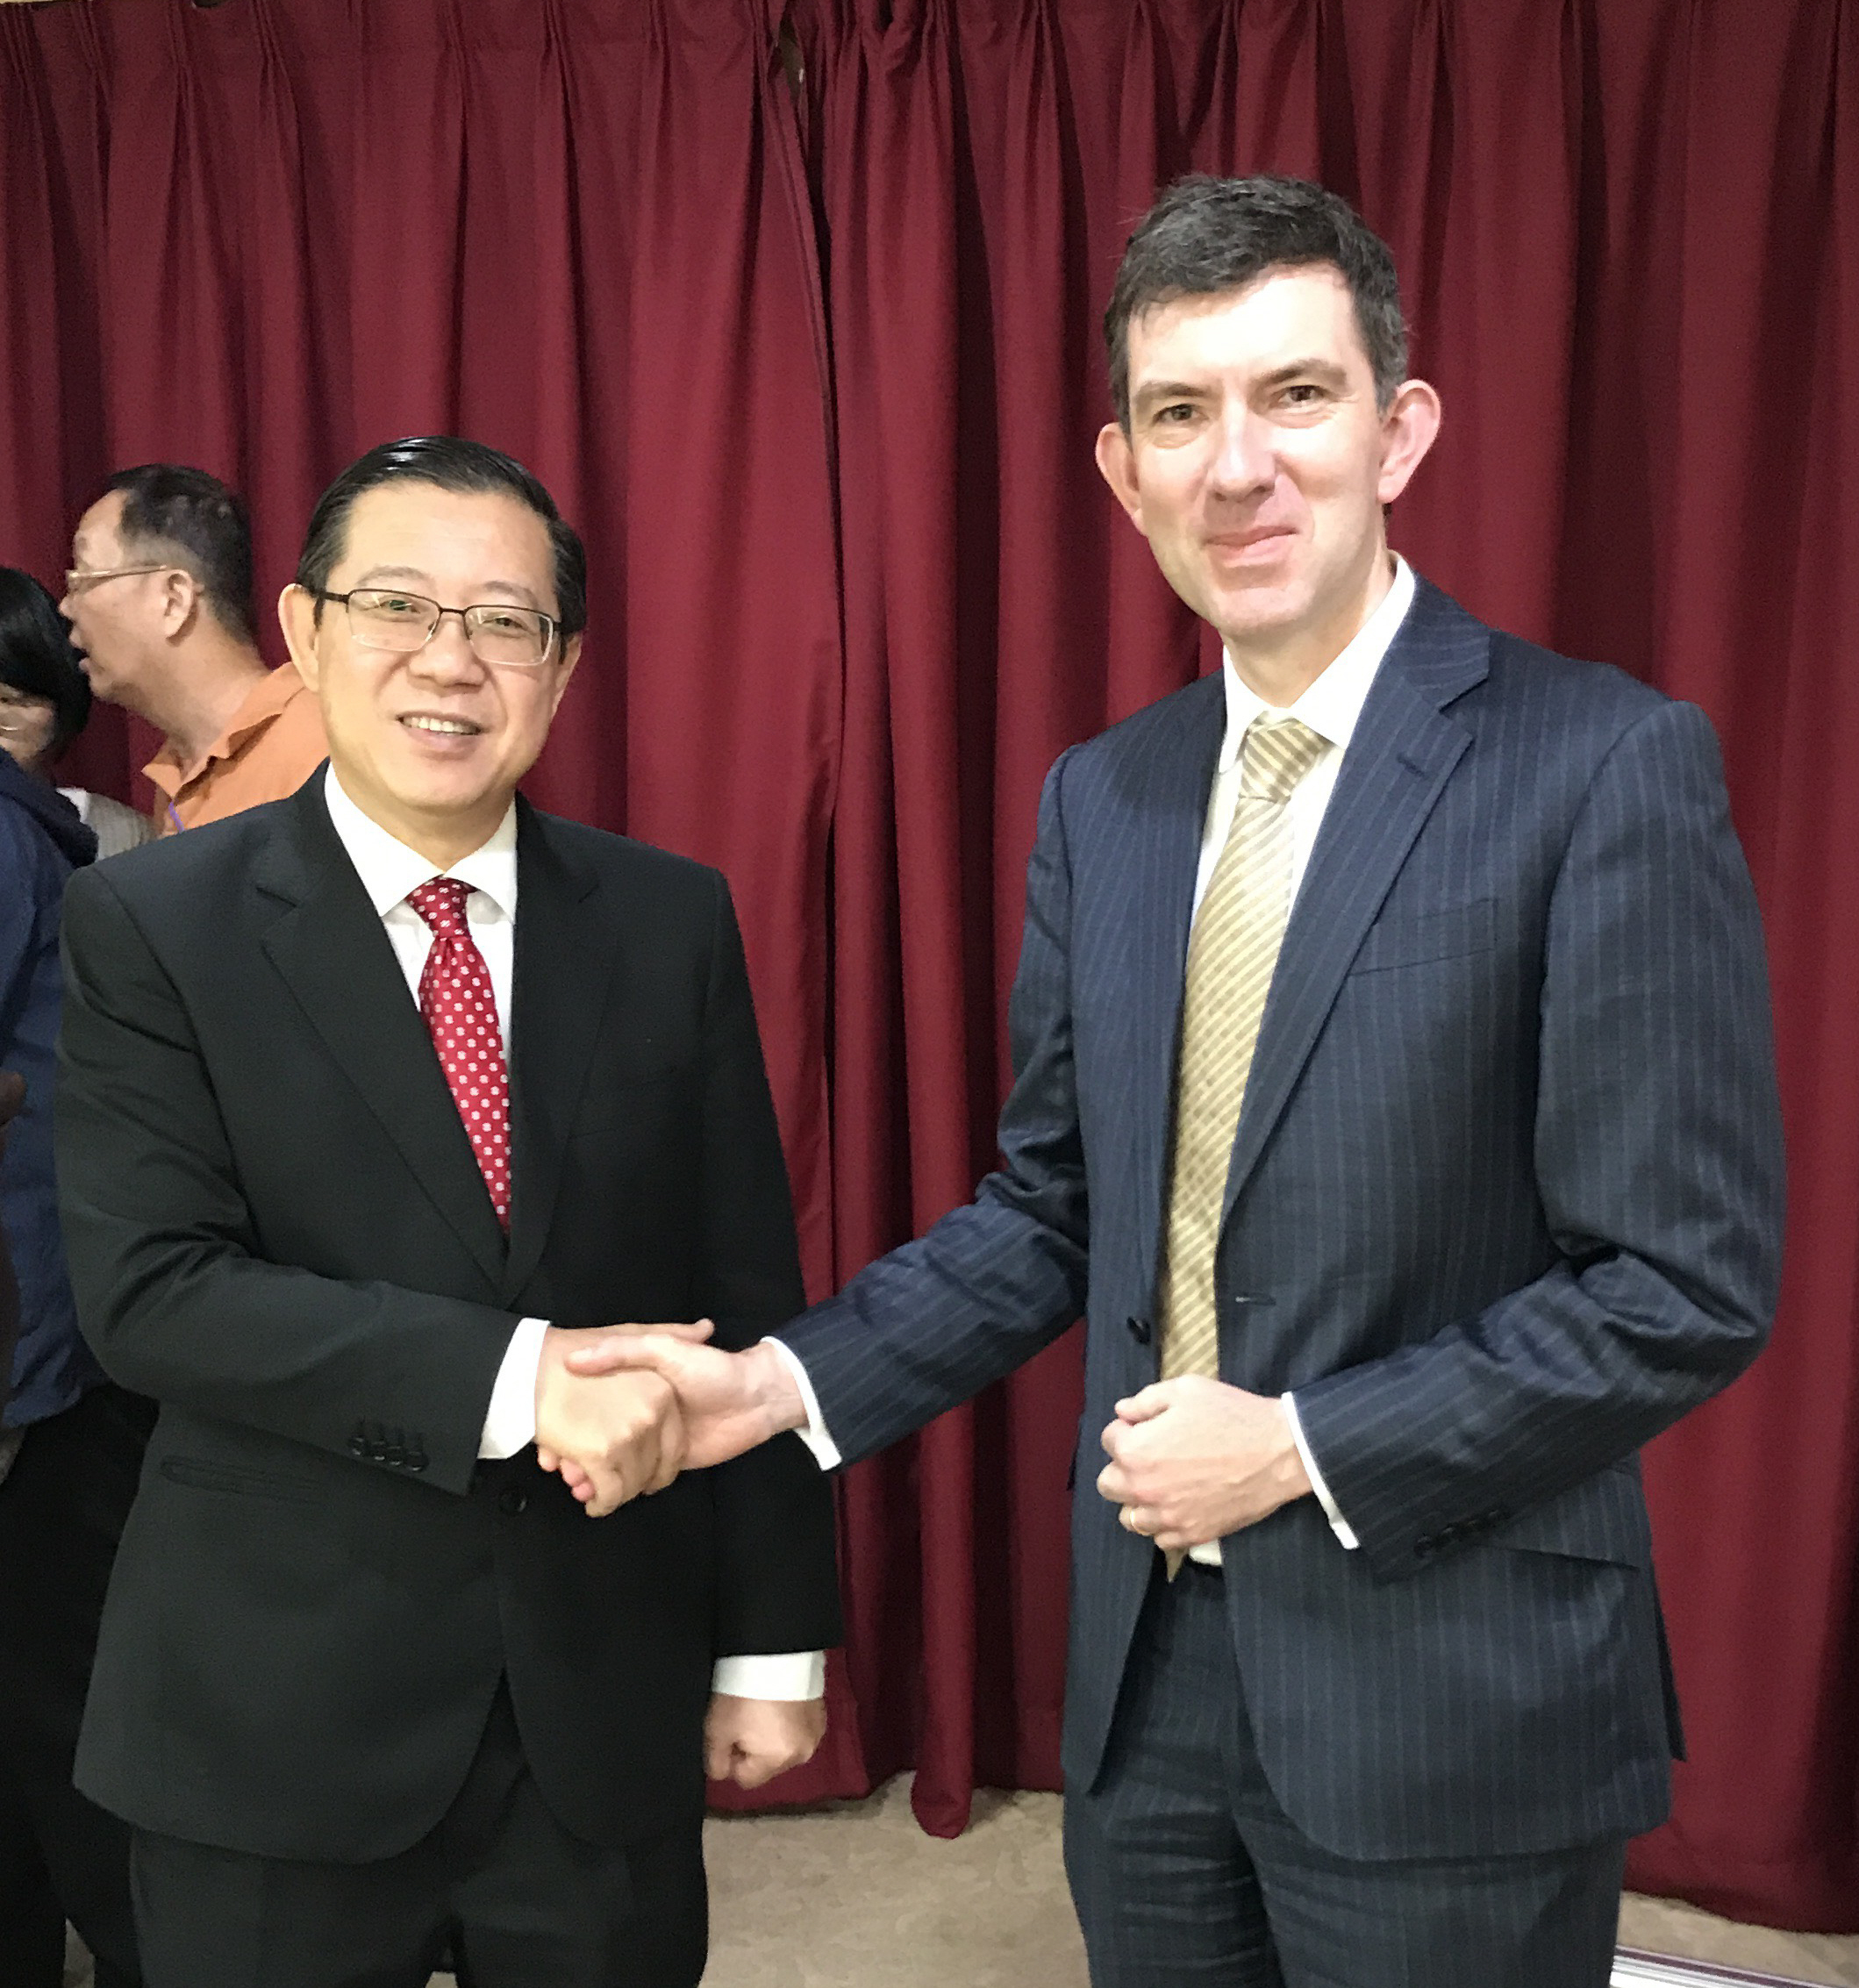 Headteacher John Browne with the chief minister of Penang Lim Guan Eng